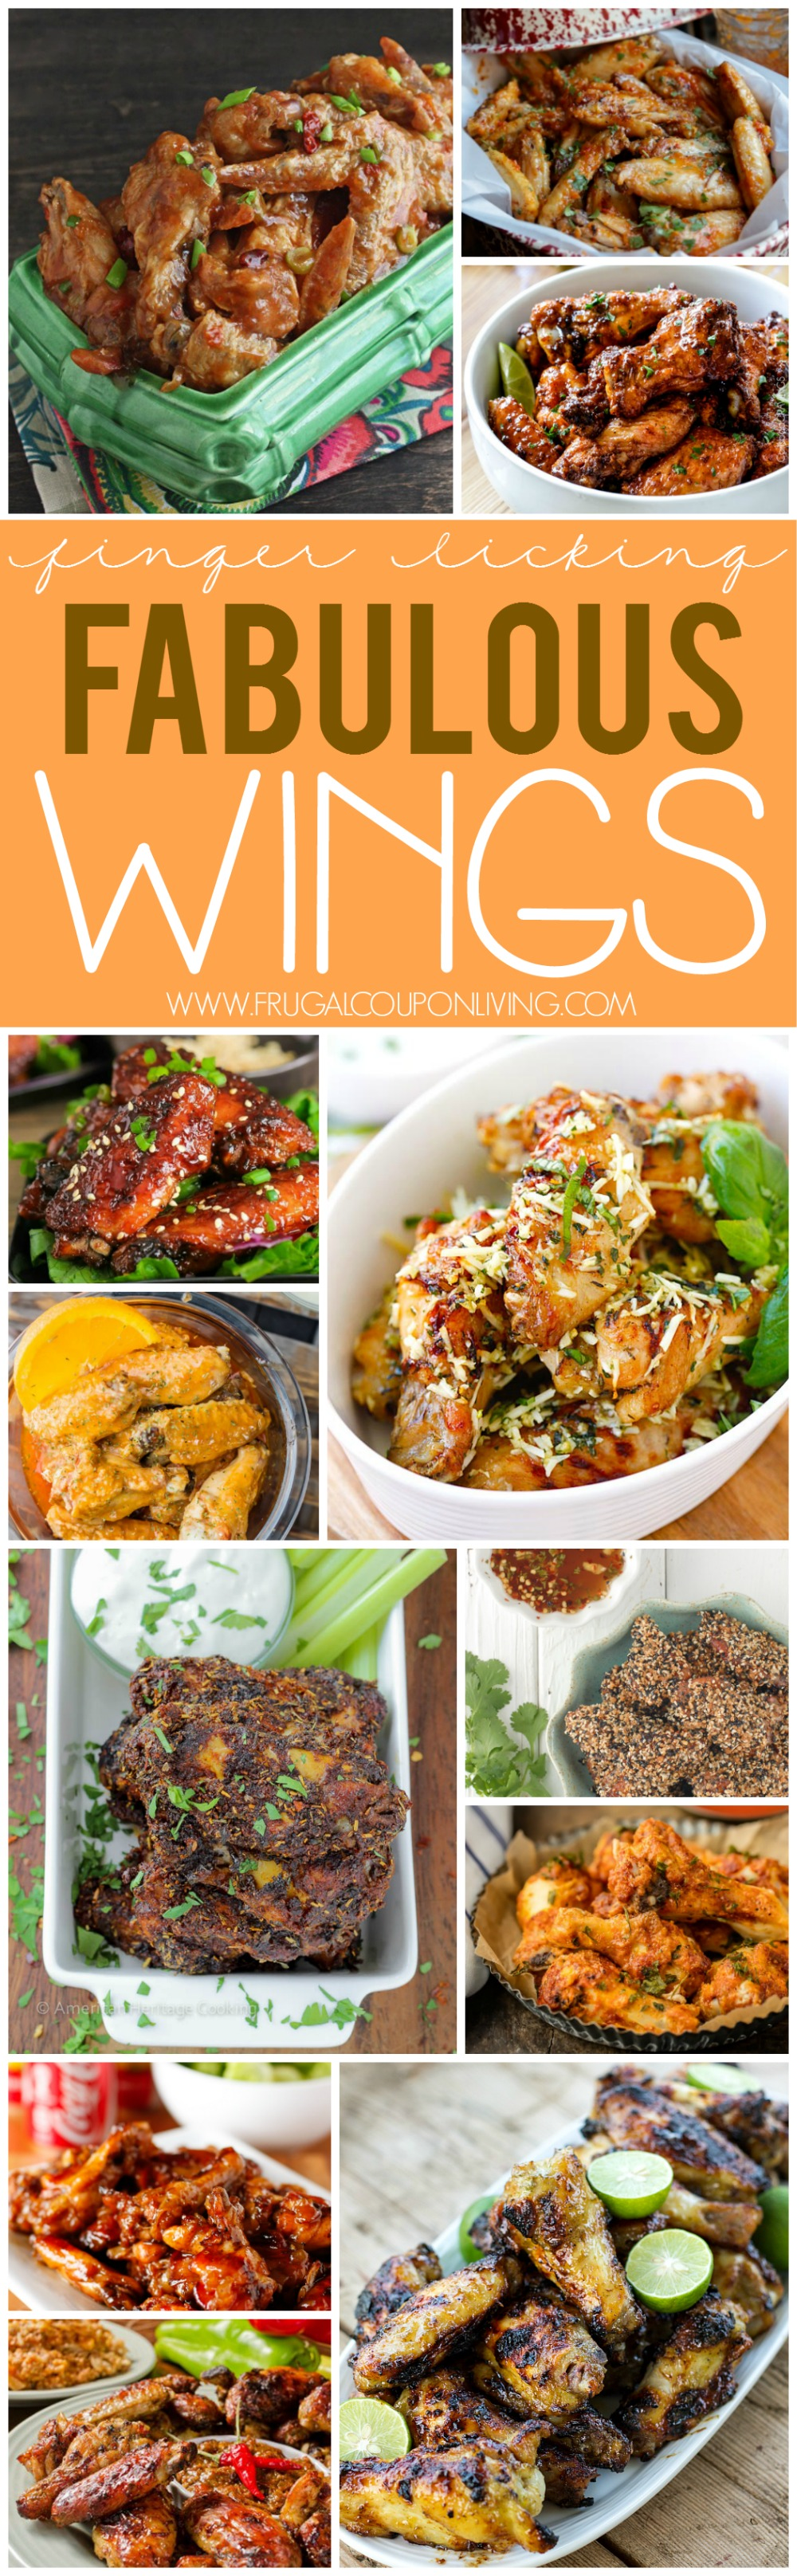 Fabulous-Wing-Recipes-Collage-Frugal-coupon-living